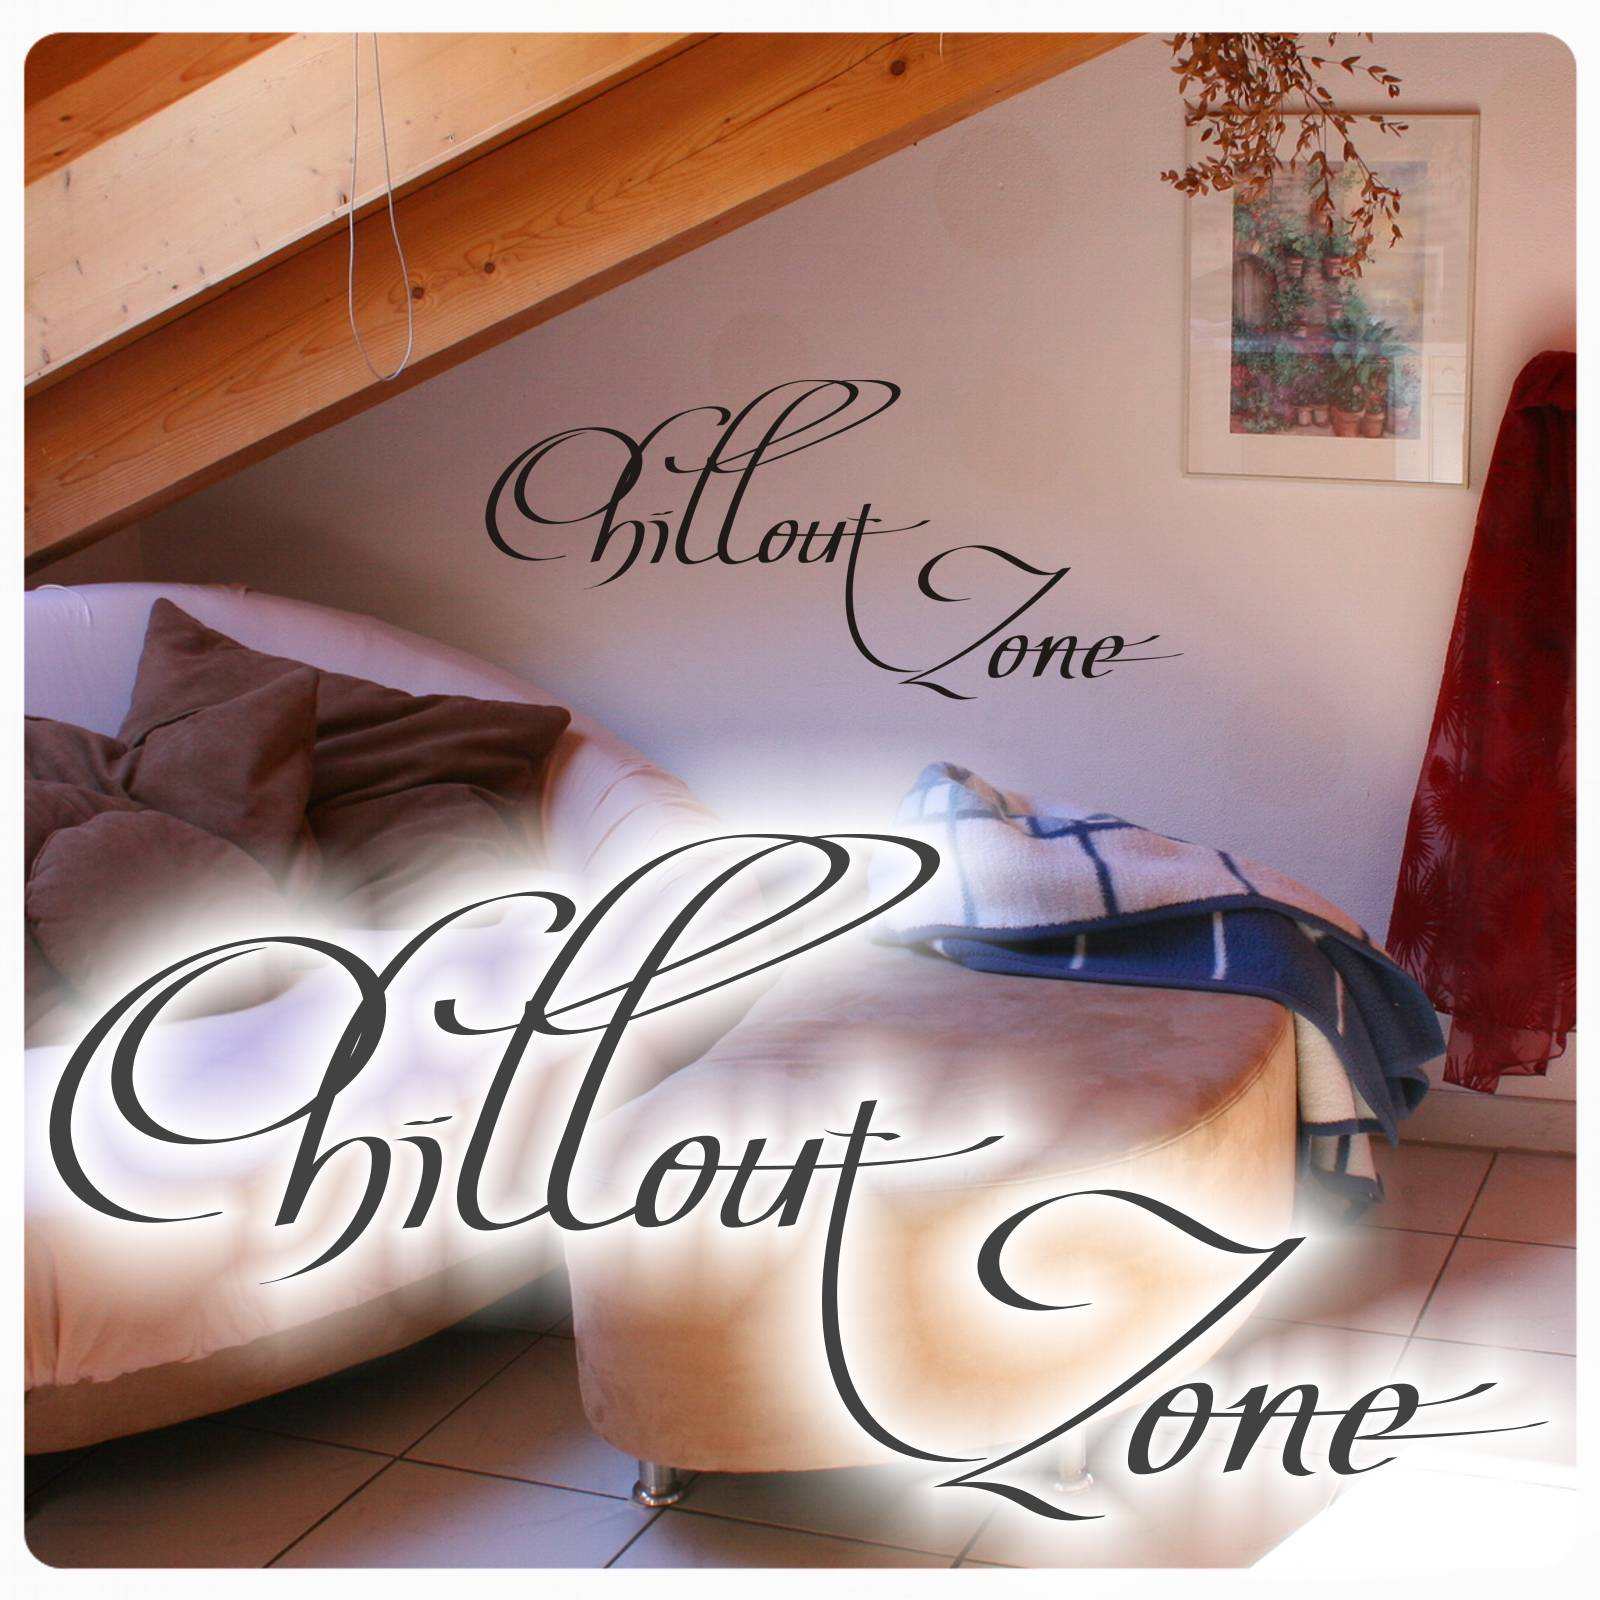 Chilloutzone Wohnzimmer Chillout Zone Lounge Wandtattoo Wandaufkleber Wohnzimmer Chill Out